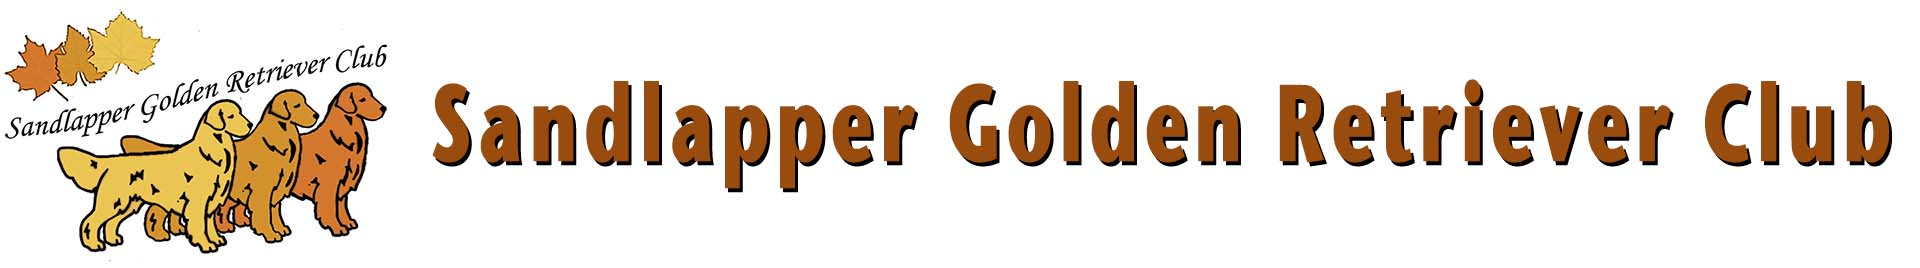 golden retriever breeder kjen goldens logo